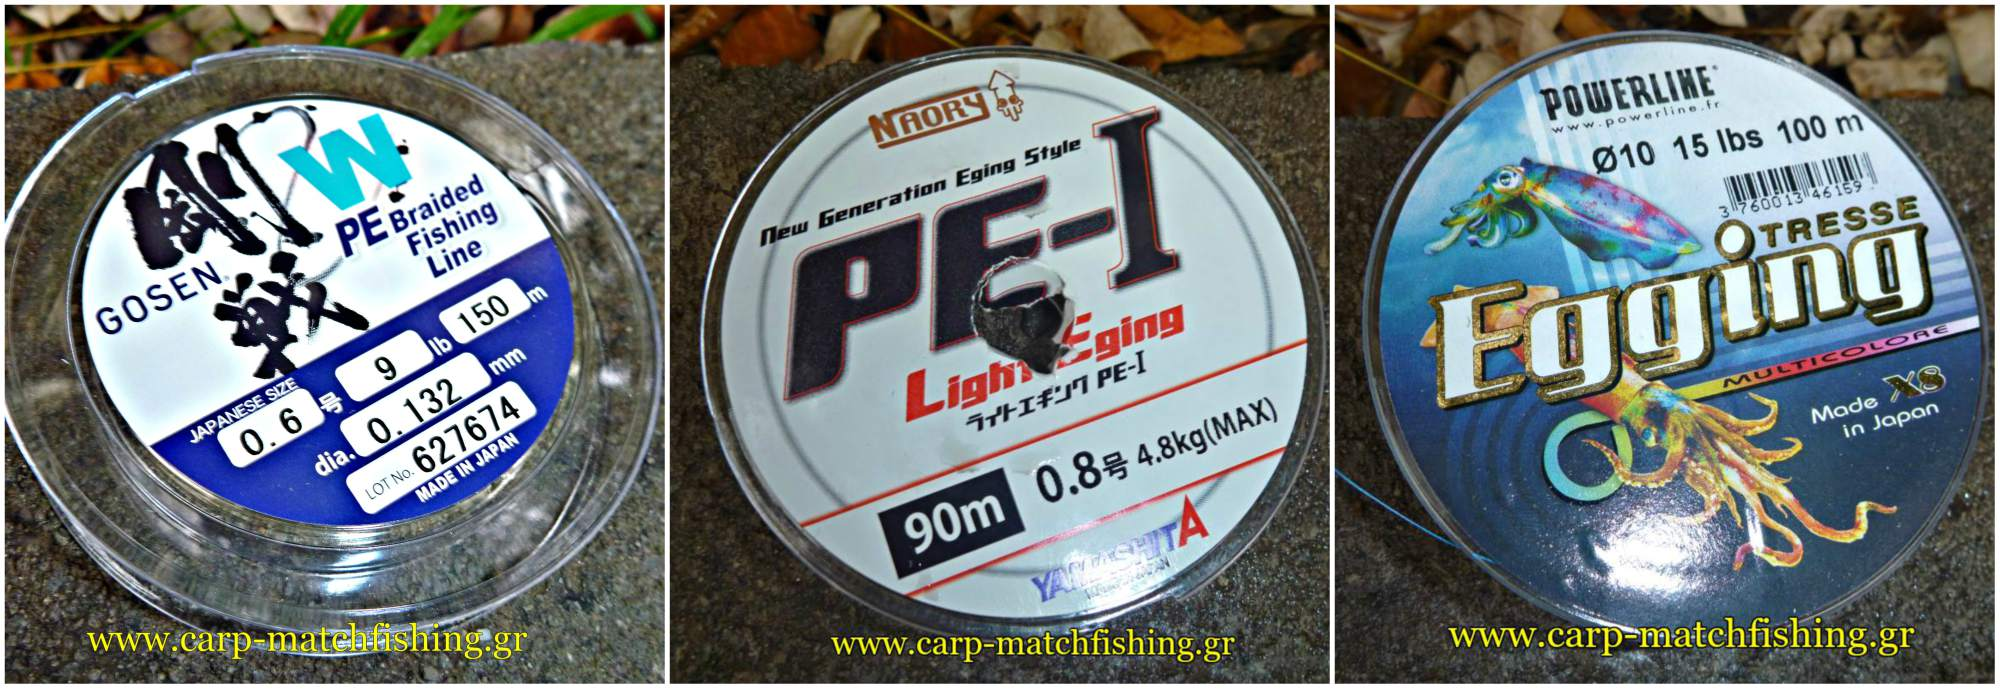 pe-ratings-braids-japan-carpmatchfishng